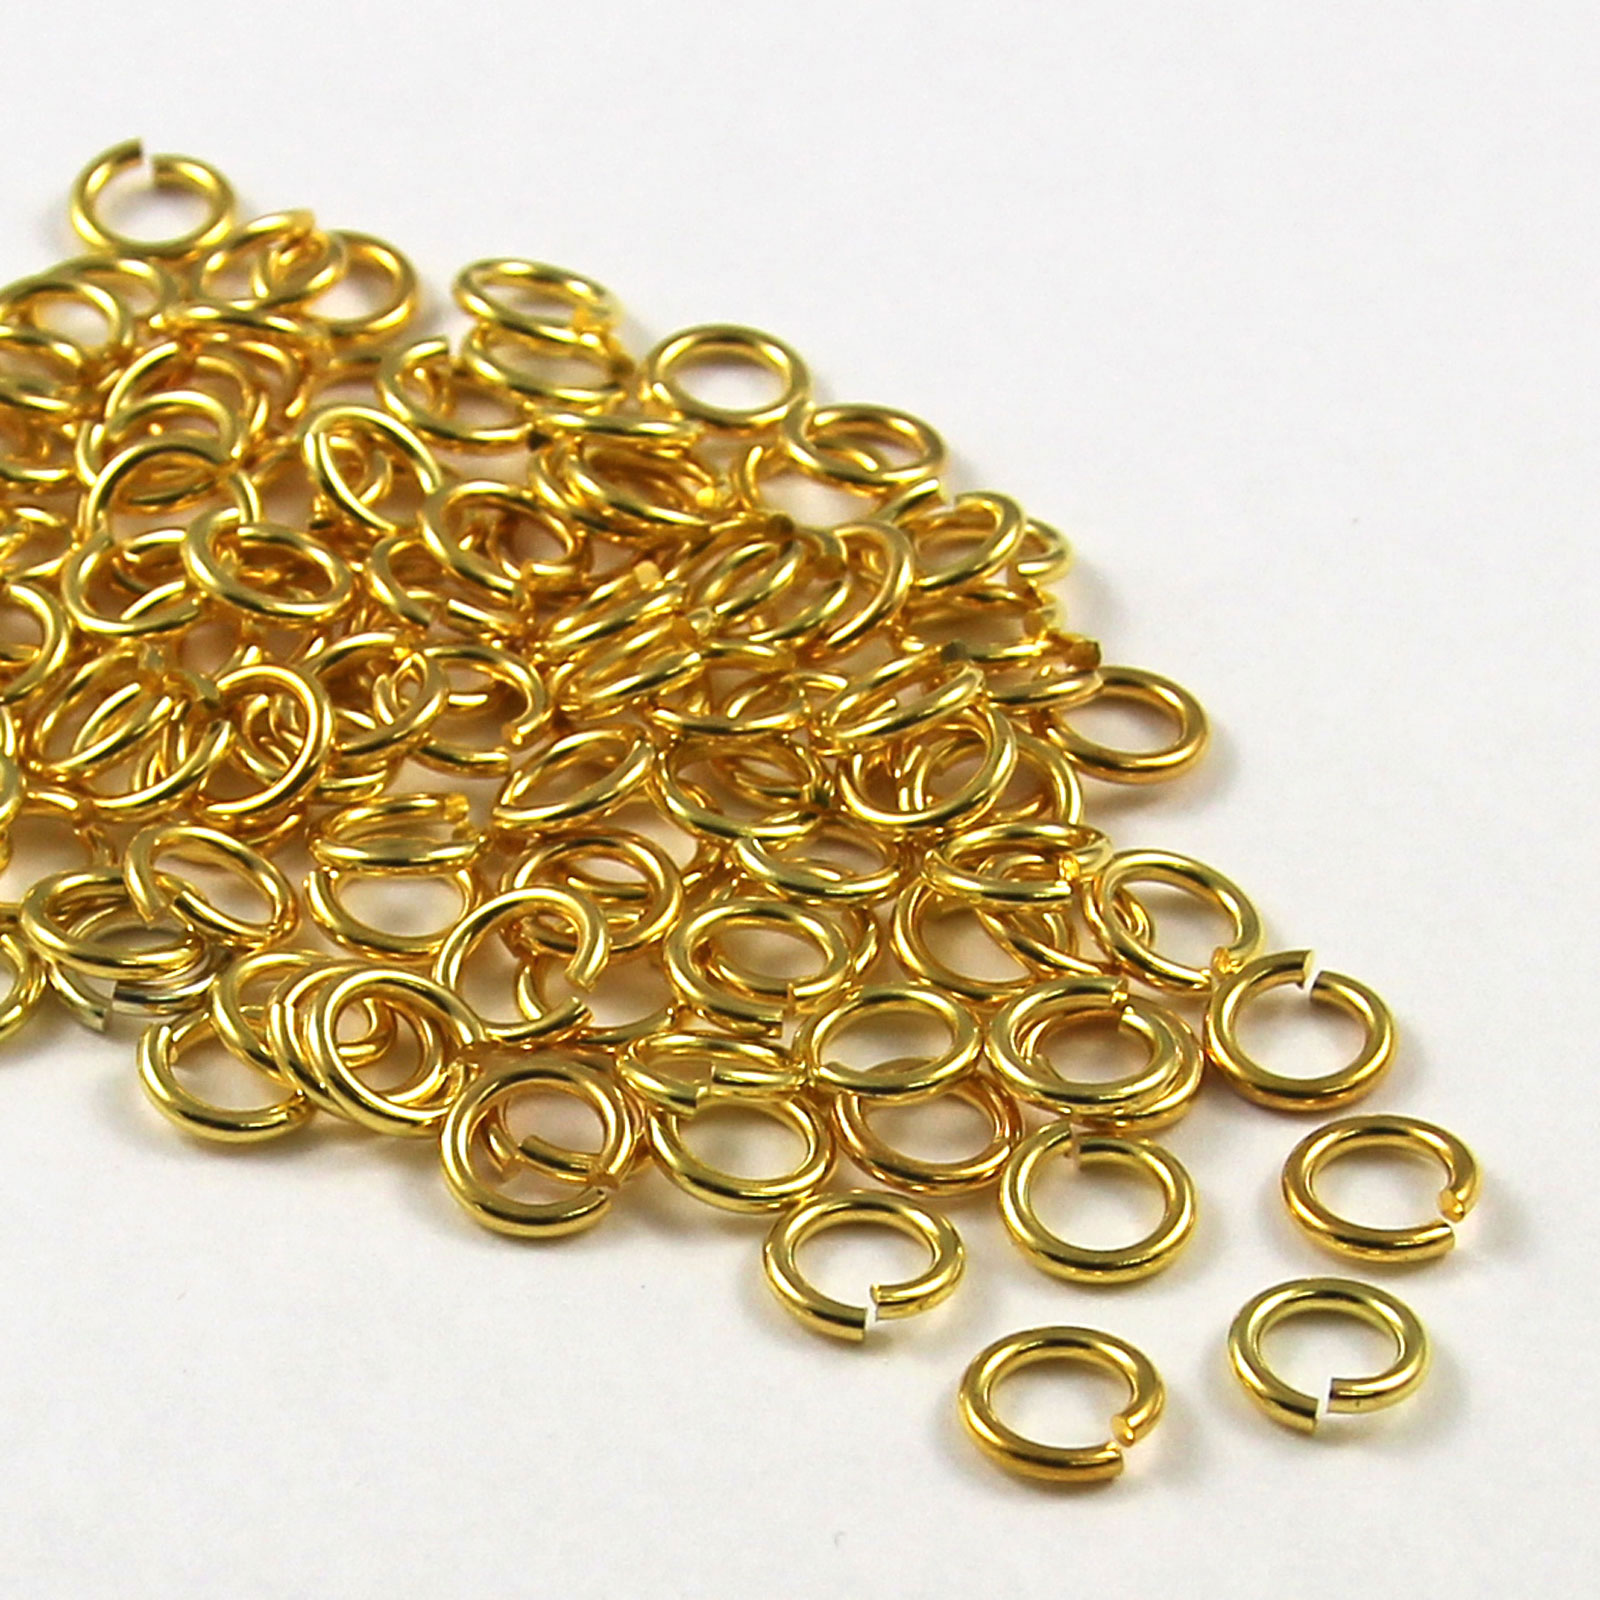 100-Gold-SILVER-PLATED-Metal-SUPER-STRONG-JUMP-RINGS-6-7-8-9-10mm